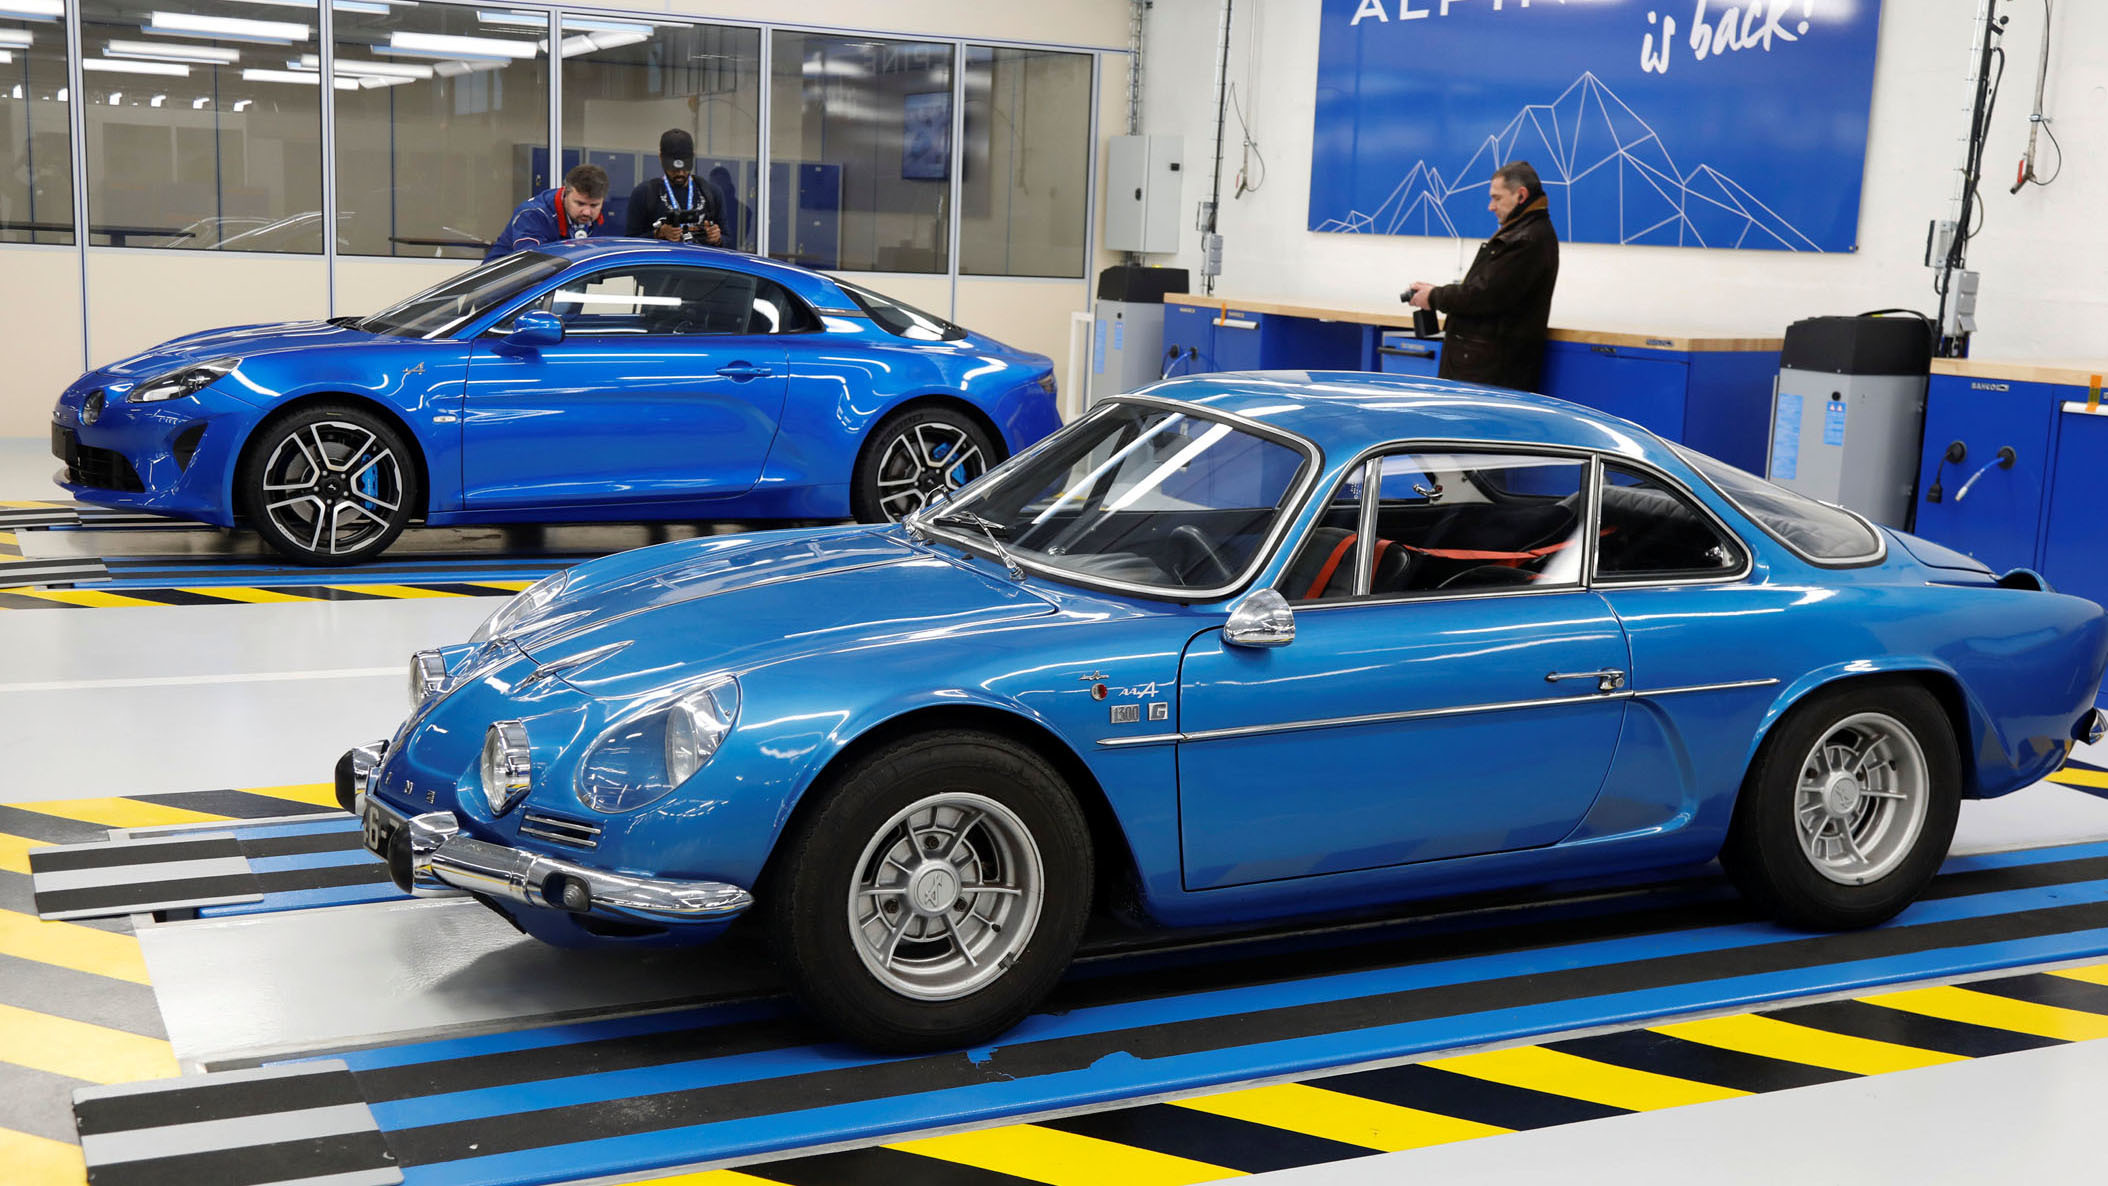 Super Renault opens Alpine plant, will build 6,000 per year - Autoblog BX23